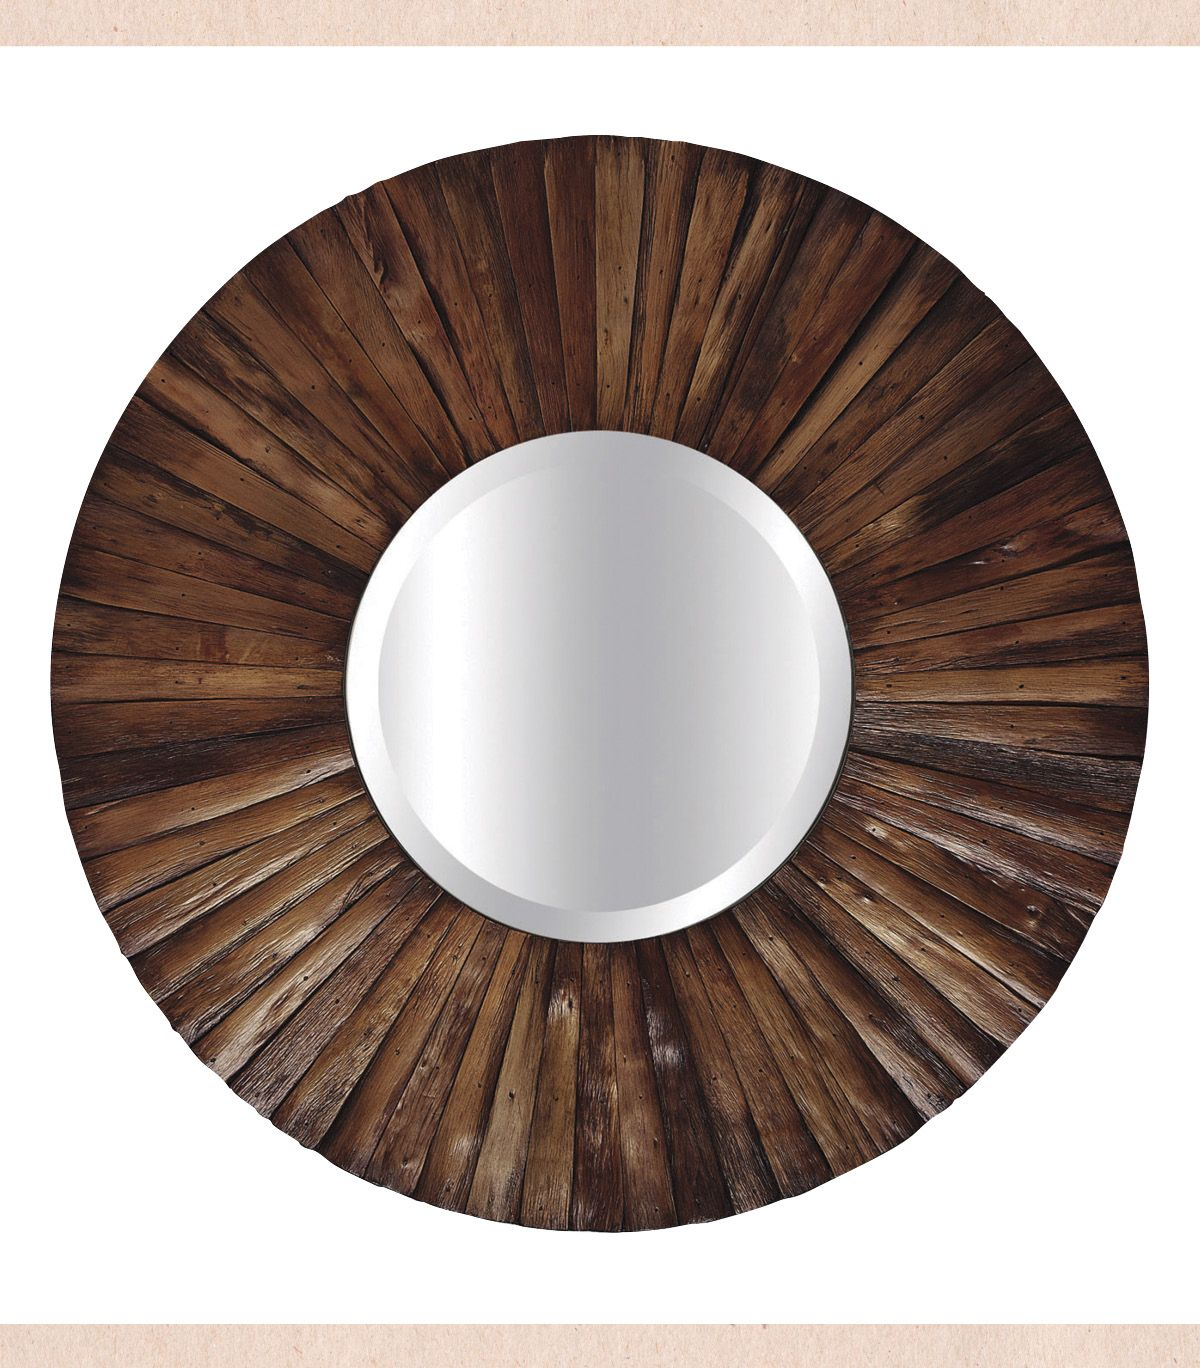 Sun Ray Mirror X Find Affordable Decorative Mirrors For Your Home That Will  Complement The Rest Of Your Furniture.